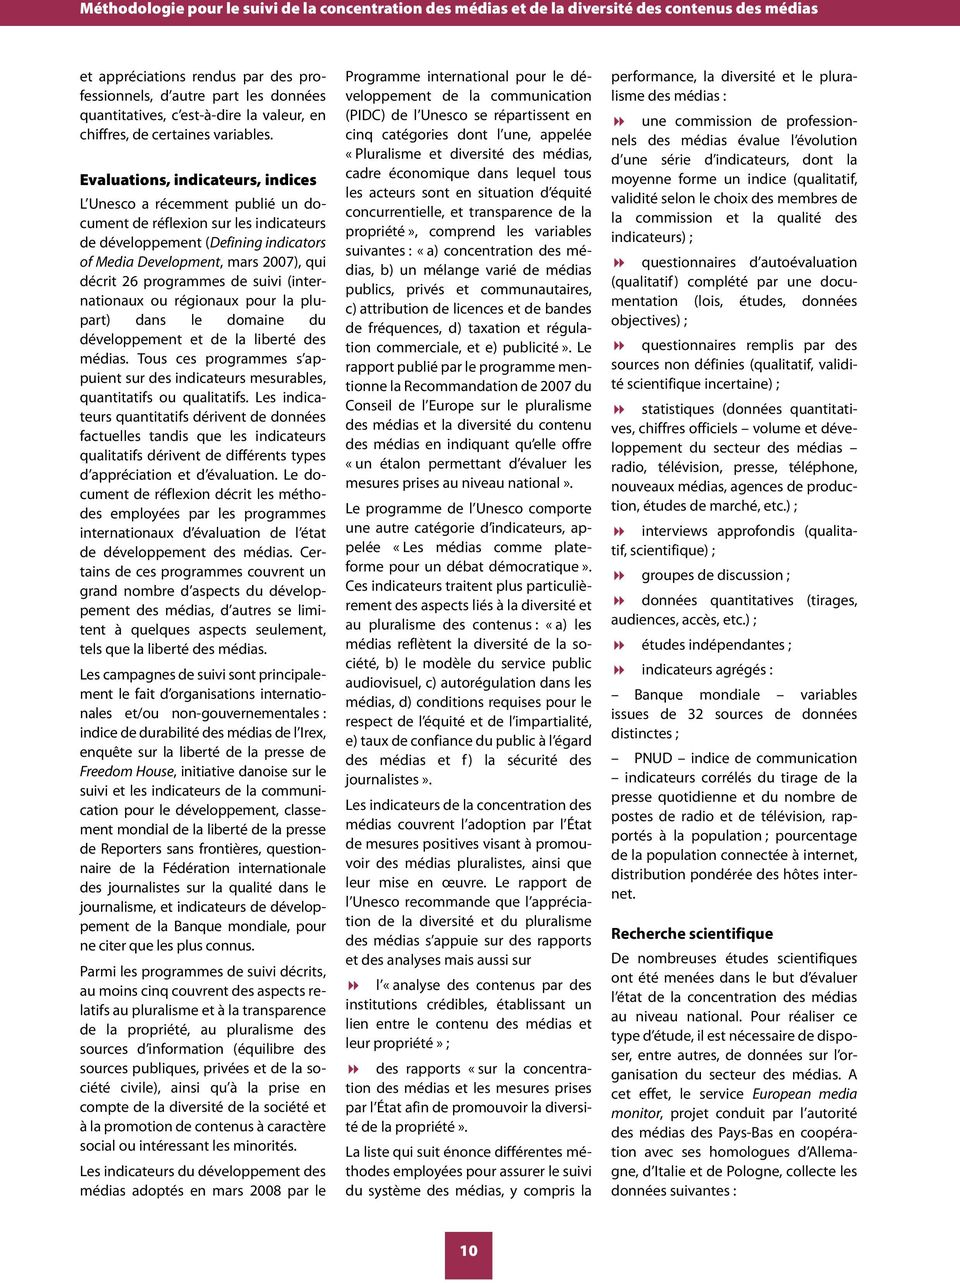 Evaluations, indicateurs, indices L Unesco a récemment publié un document de réflexion sur les indicateurs de développement (Defining indicators of Media Development, mars 2007), qui décrit 26